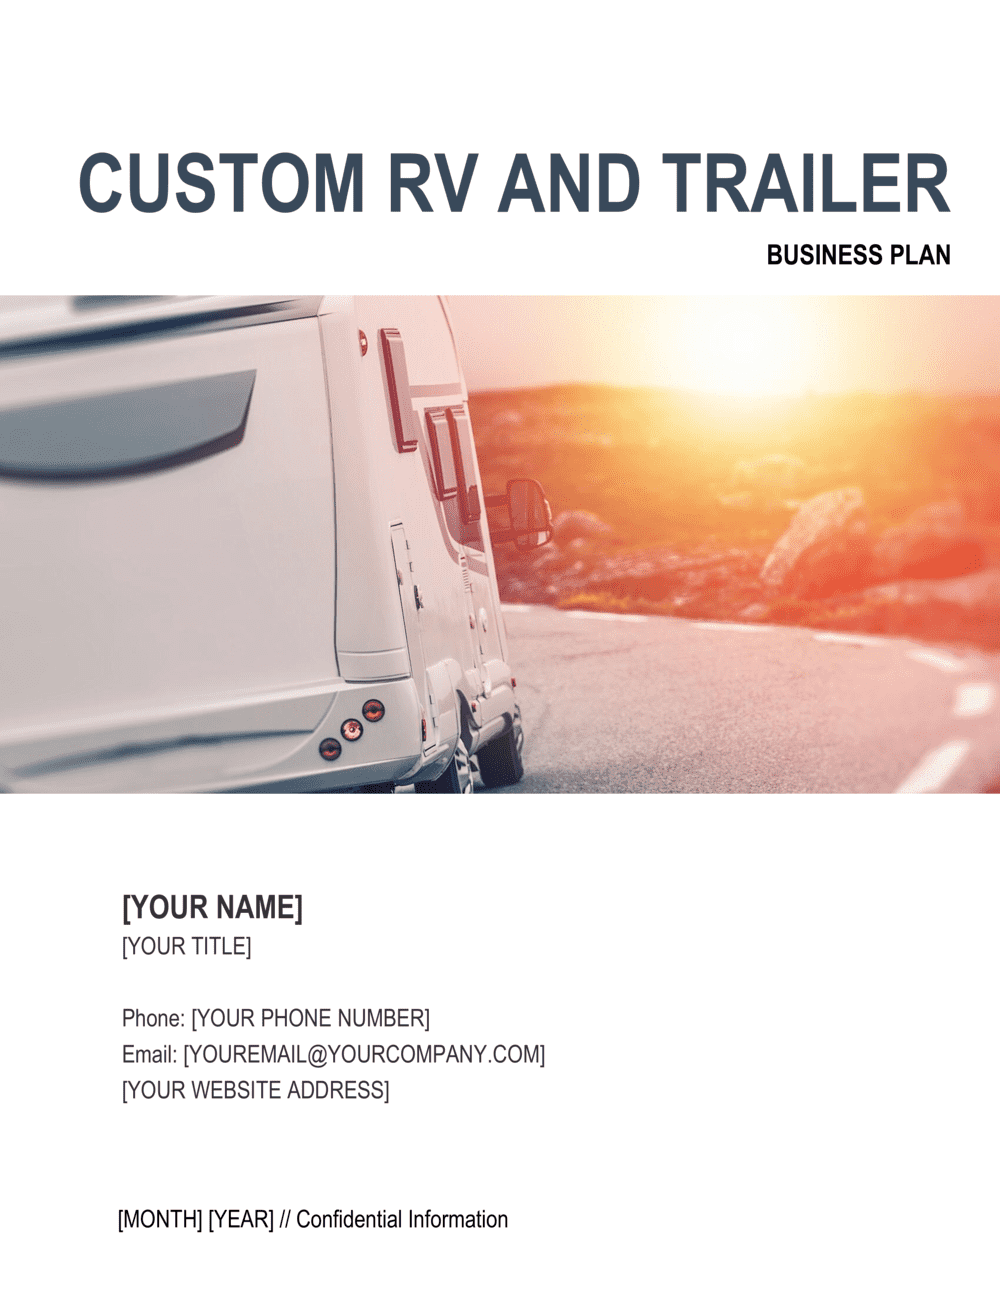 Business-in-a-Box's Custom RV and Trailer Business Plan Template